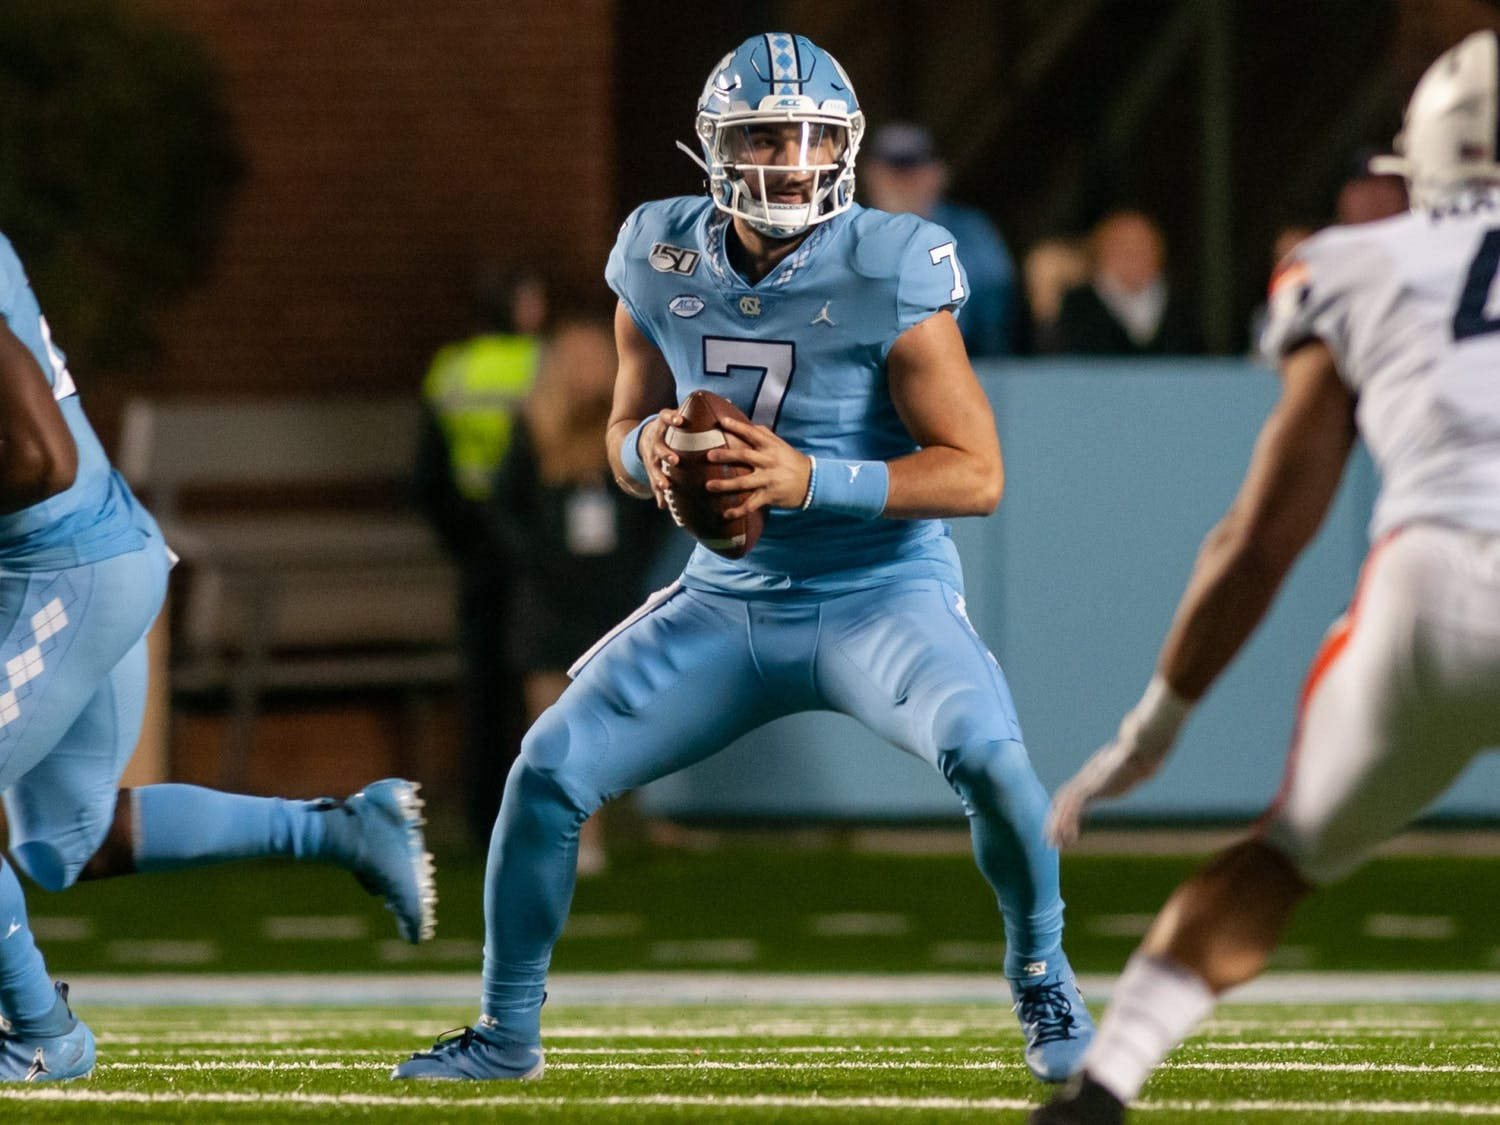 First-year quarterback Sam Howell (7) looks to make a pass during a game against UVA in Kenan Stadium on Nov. 2, 2019.